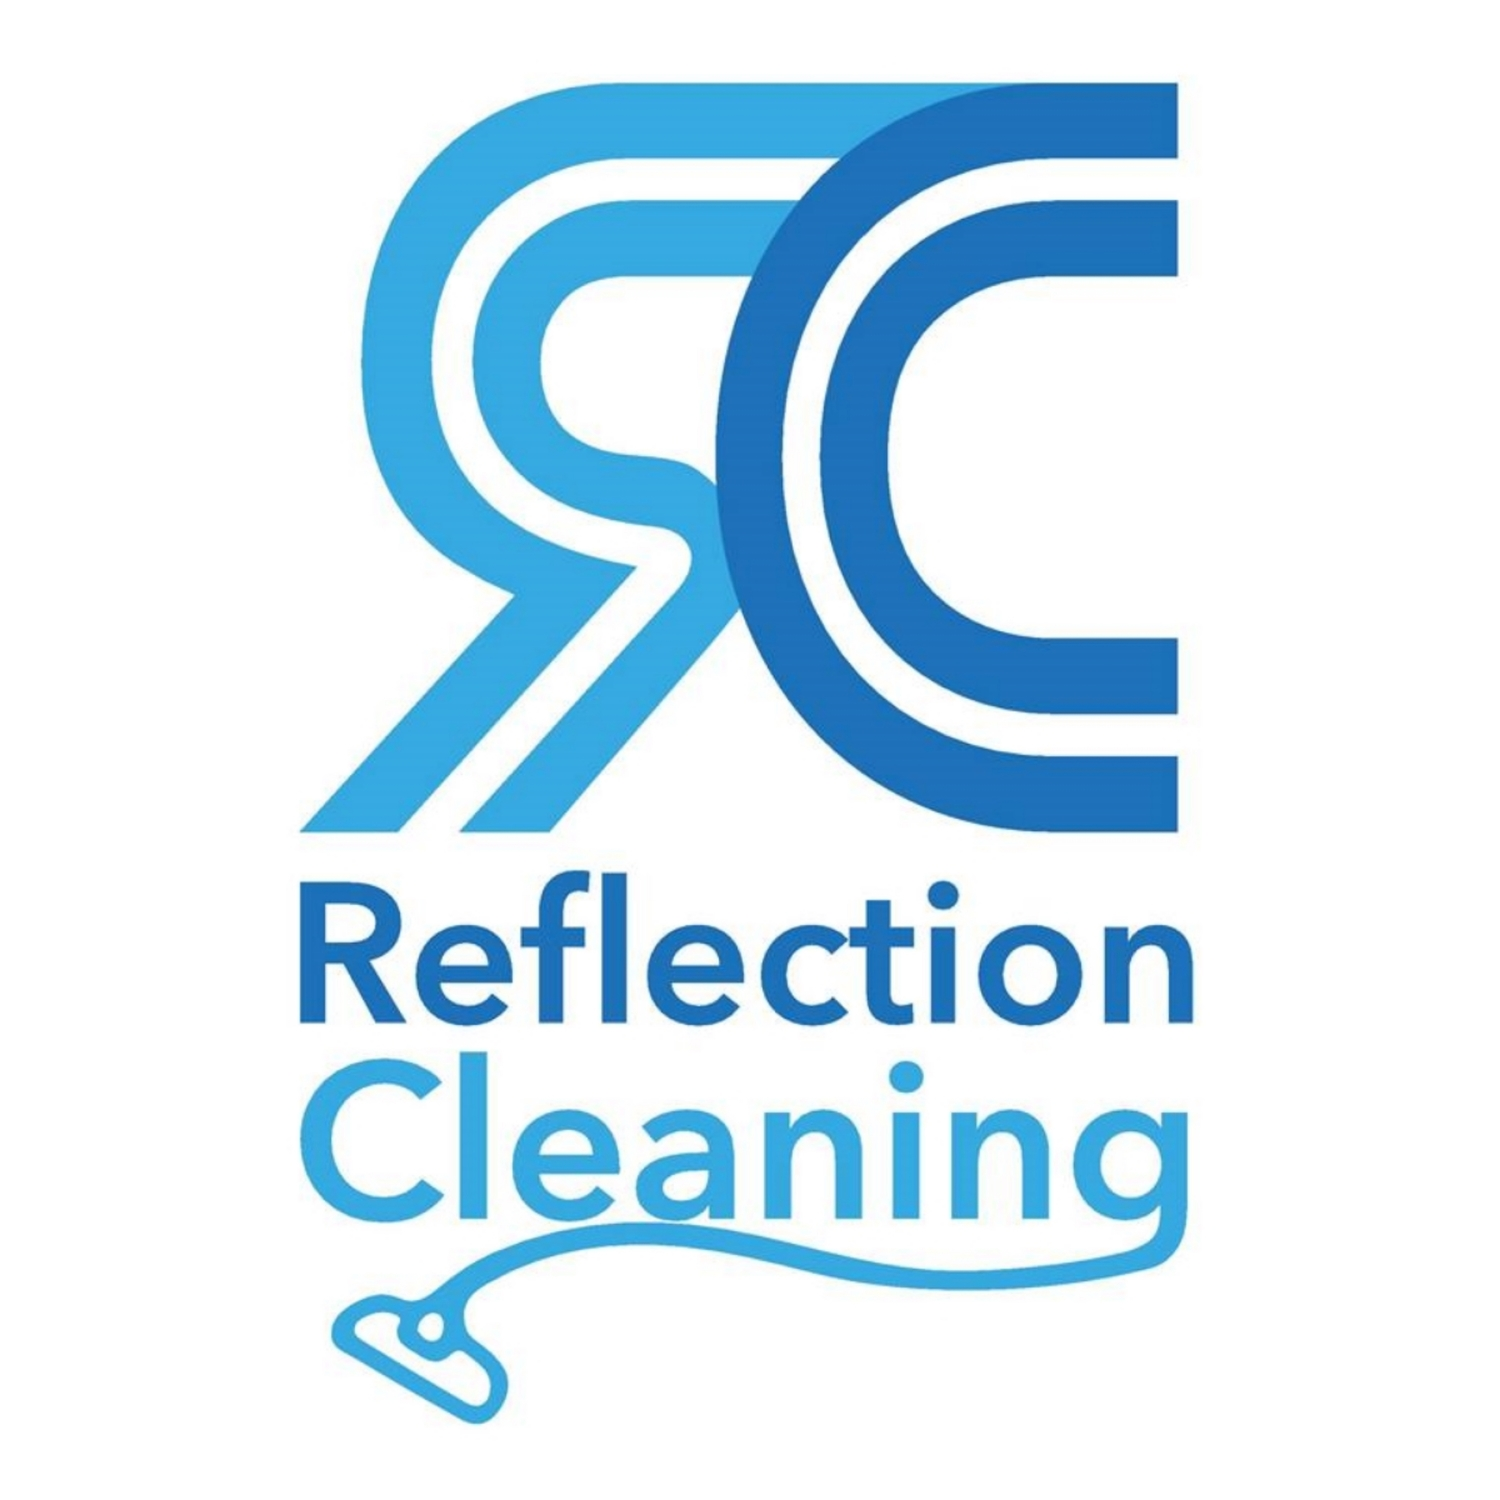 Reflection Cleaning